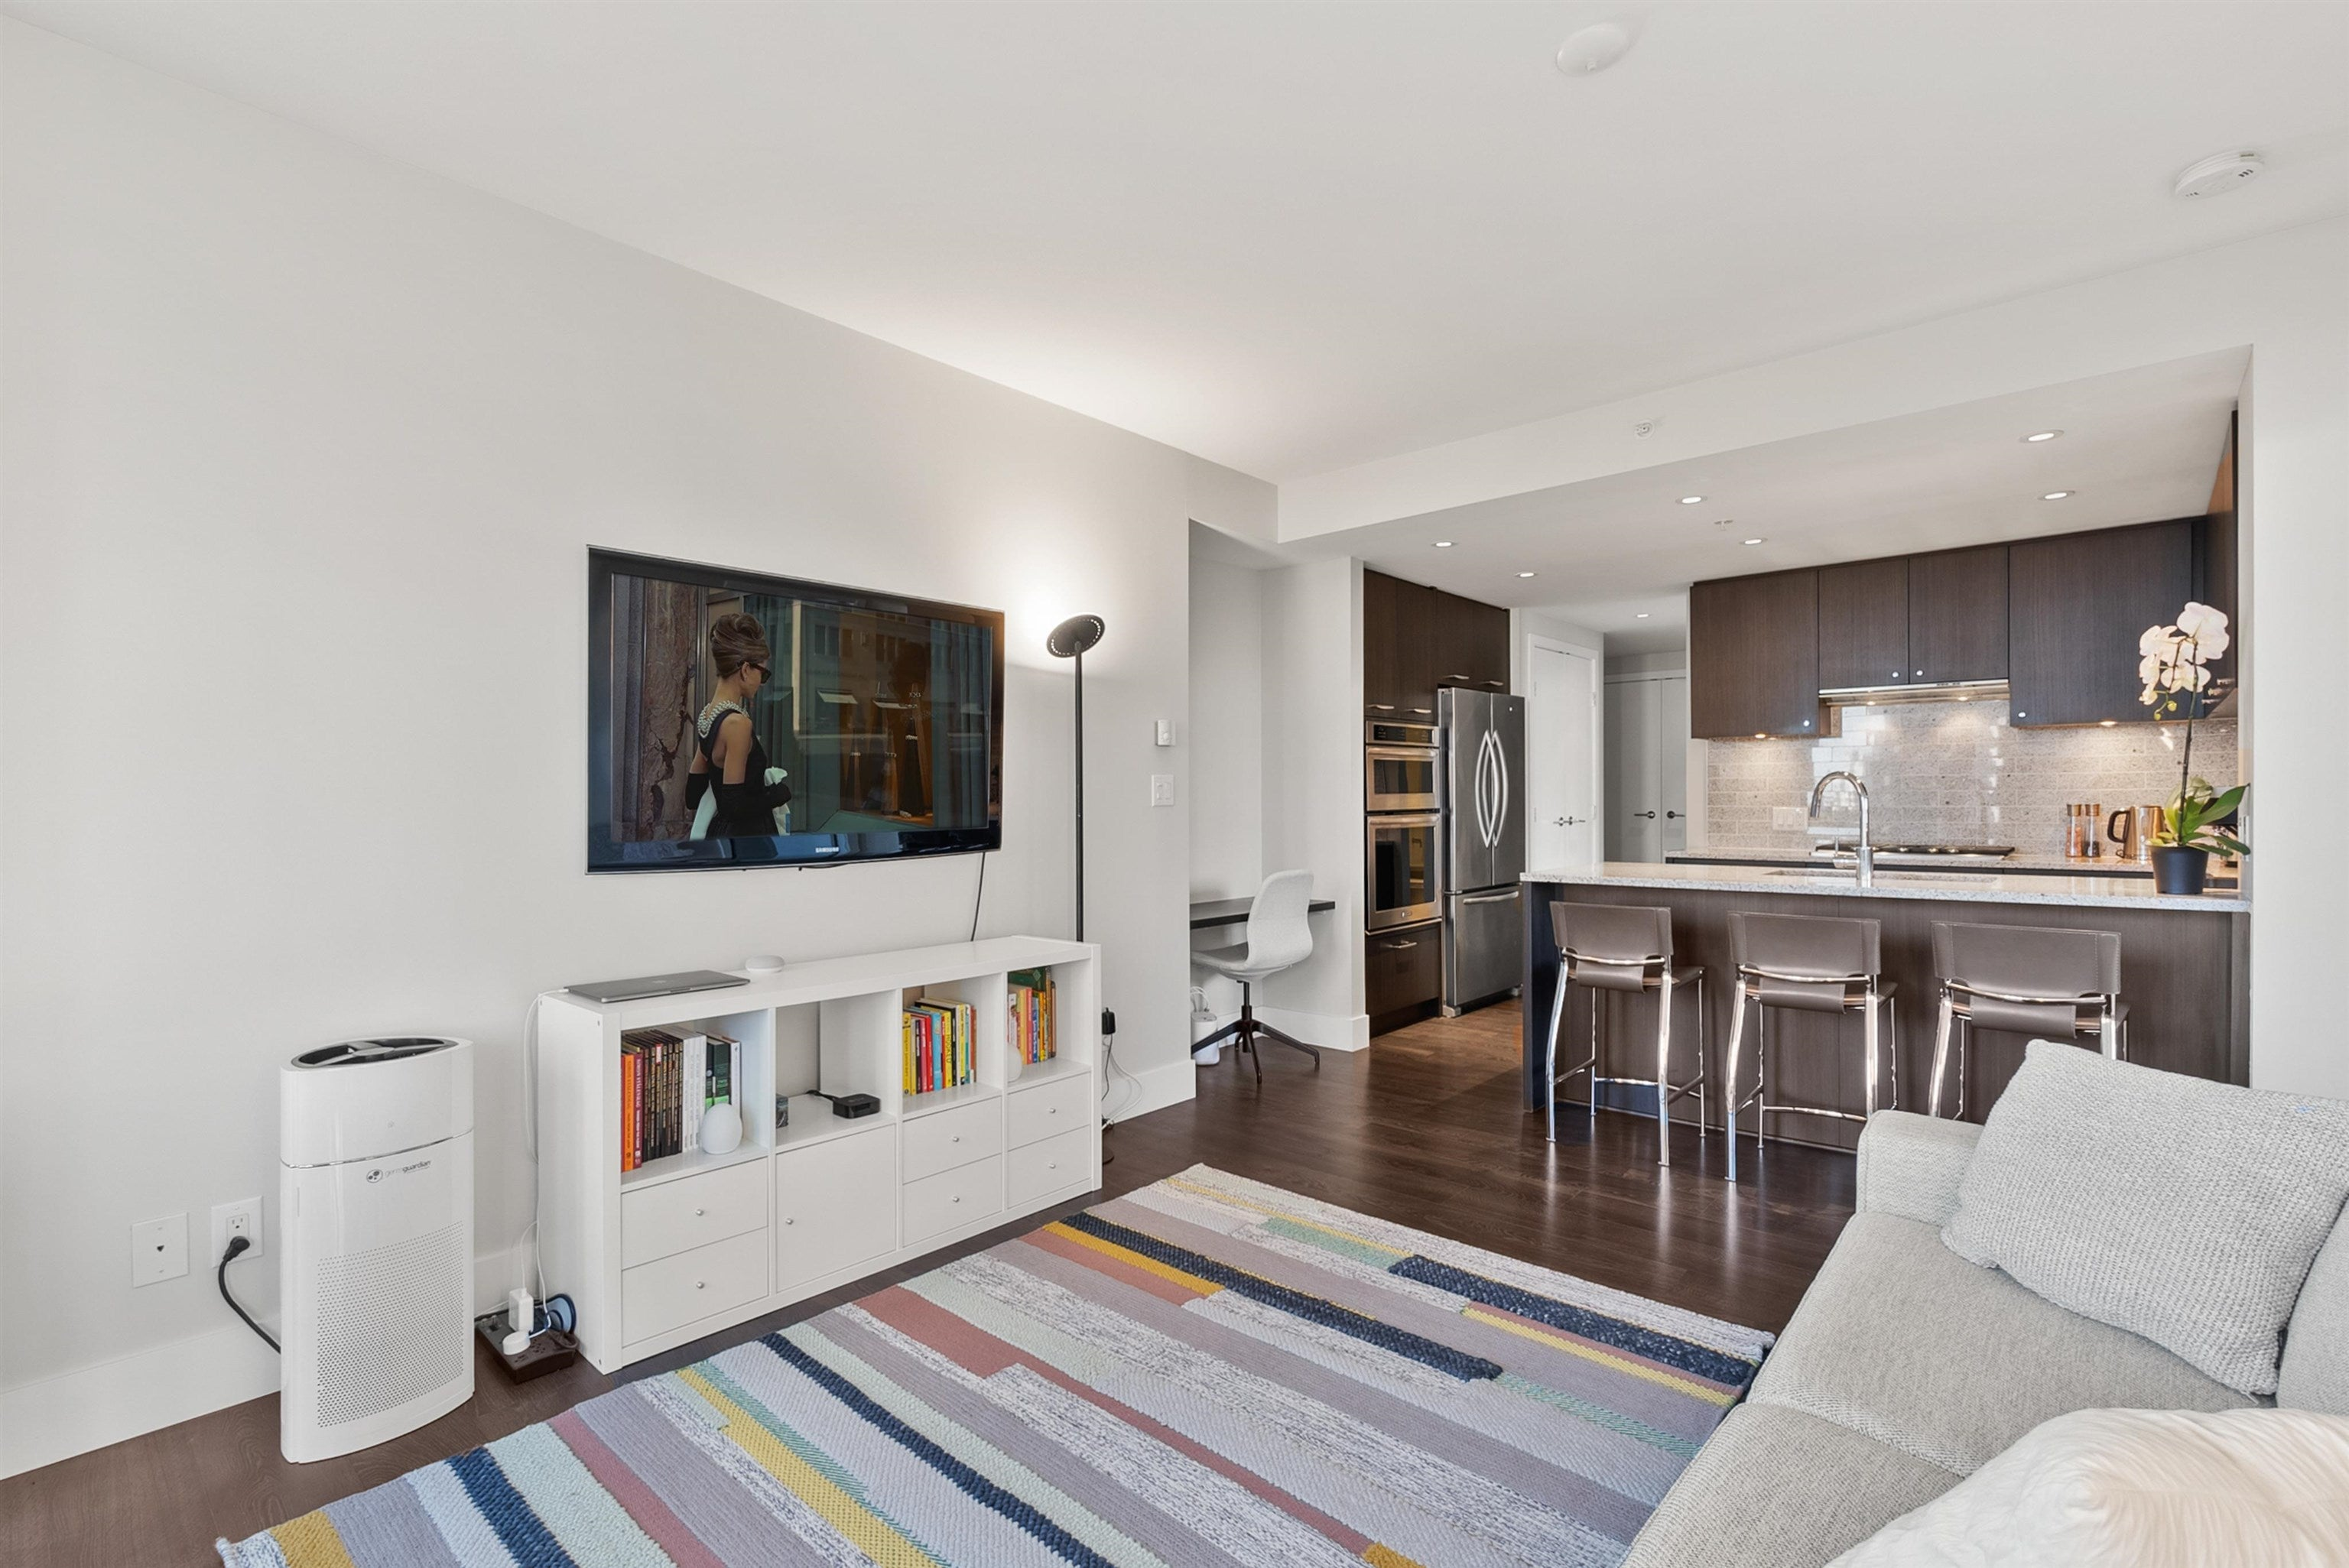 503 150 W 15TH STREET - Central Lonsdale Apartment/Condo for sale, 2 Bedrooms (R2624732) - #8